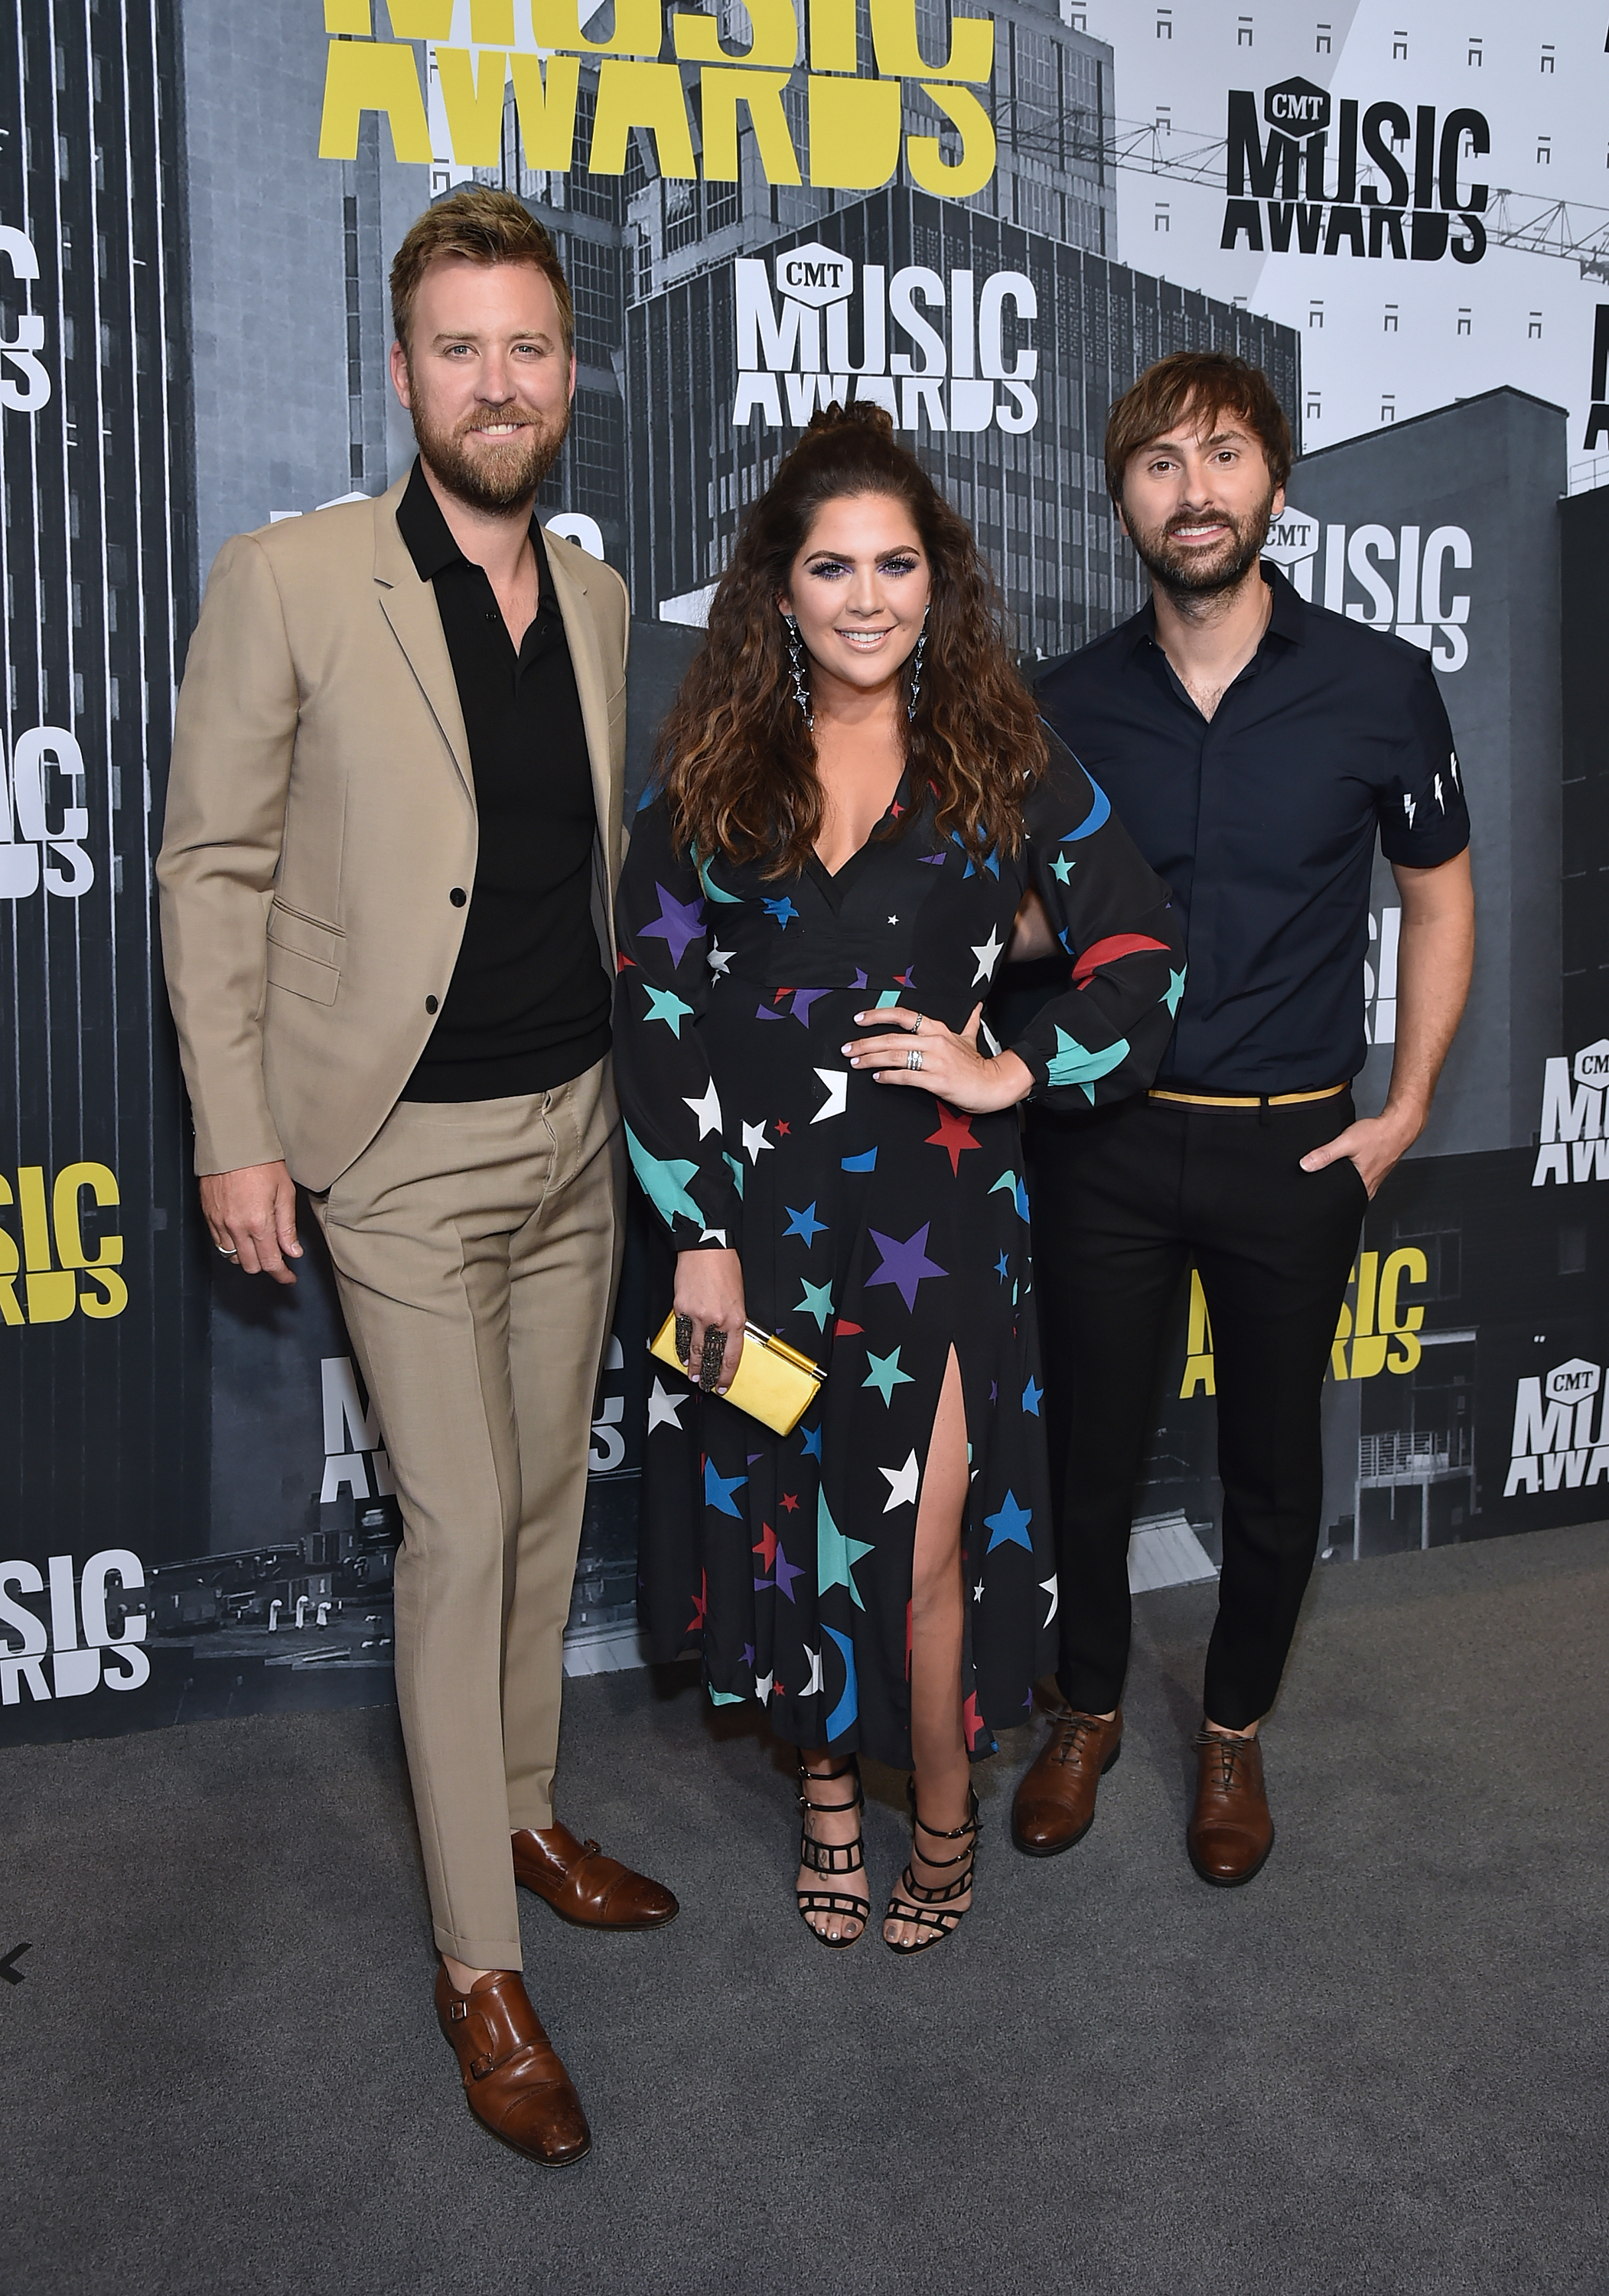 NASHVILLE, TN - JUNE 07: (L-R) Charles Kelley, Hillary Scott and Dave Haywood of Lady Antebellum attends the 2017 CMT Music Awards at the Music City Center on June 7, 2017 in Nashville, Tennessee. (Photo by Mike Coppola/WireImage)